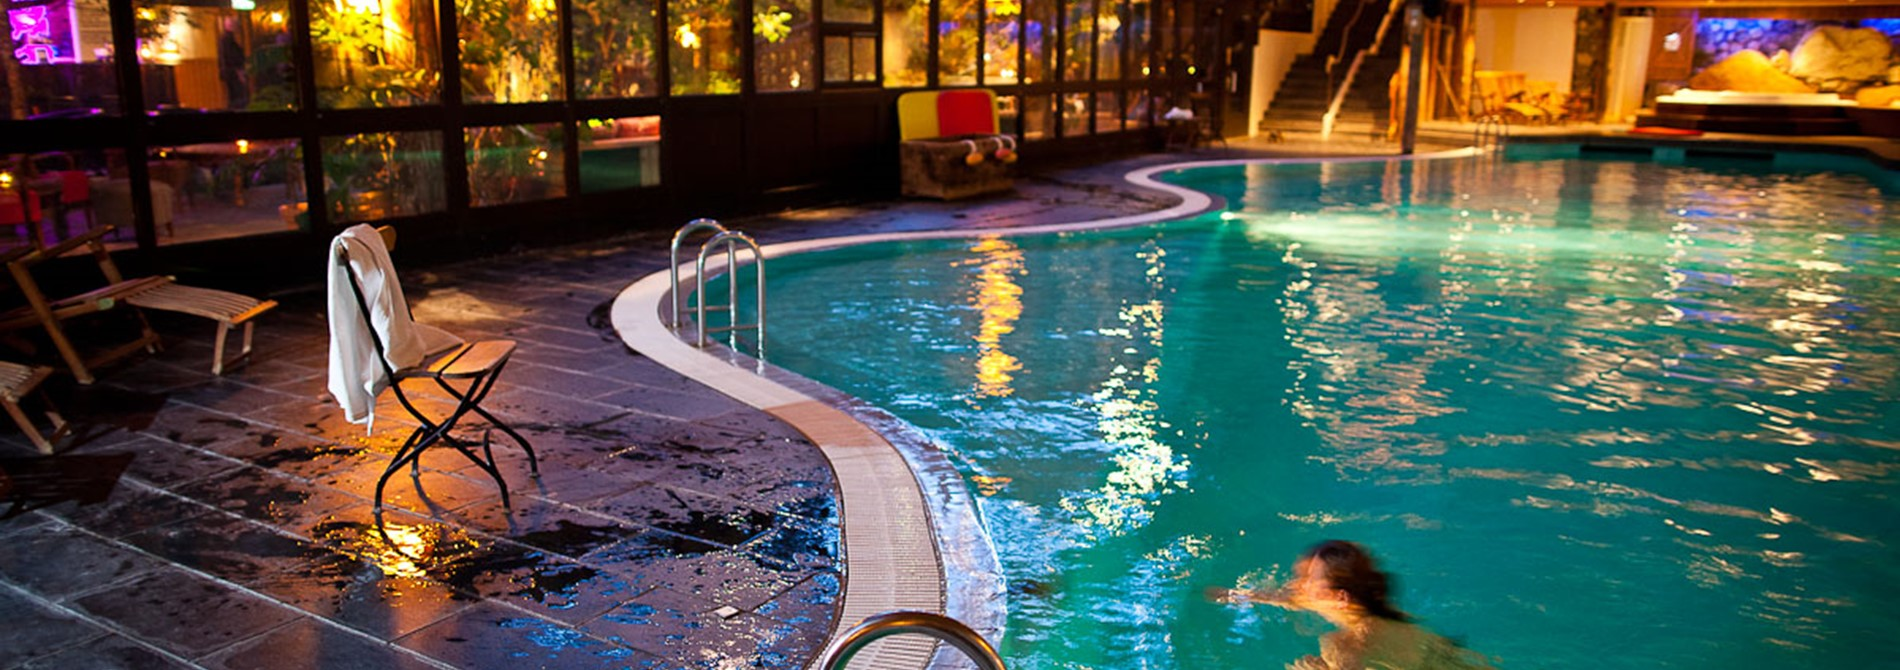 ronneby spa hotell